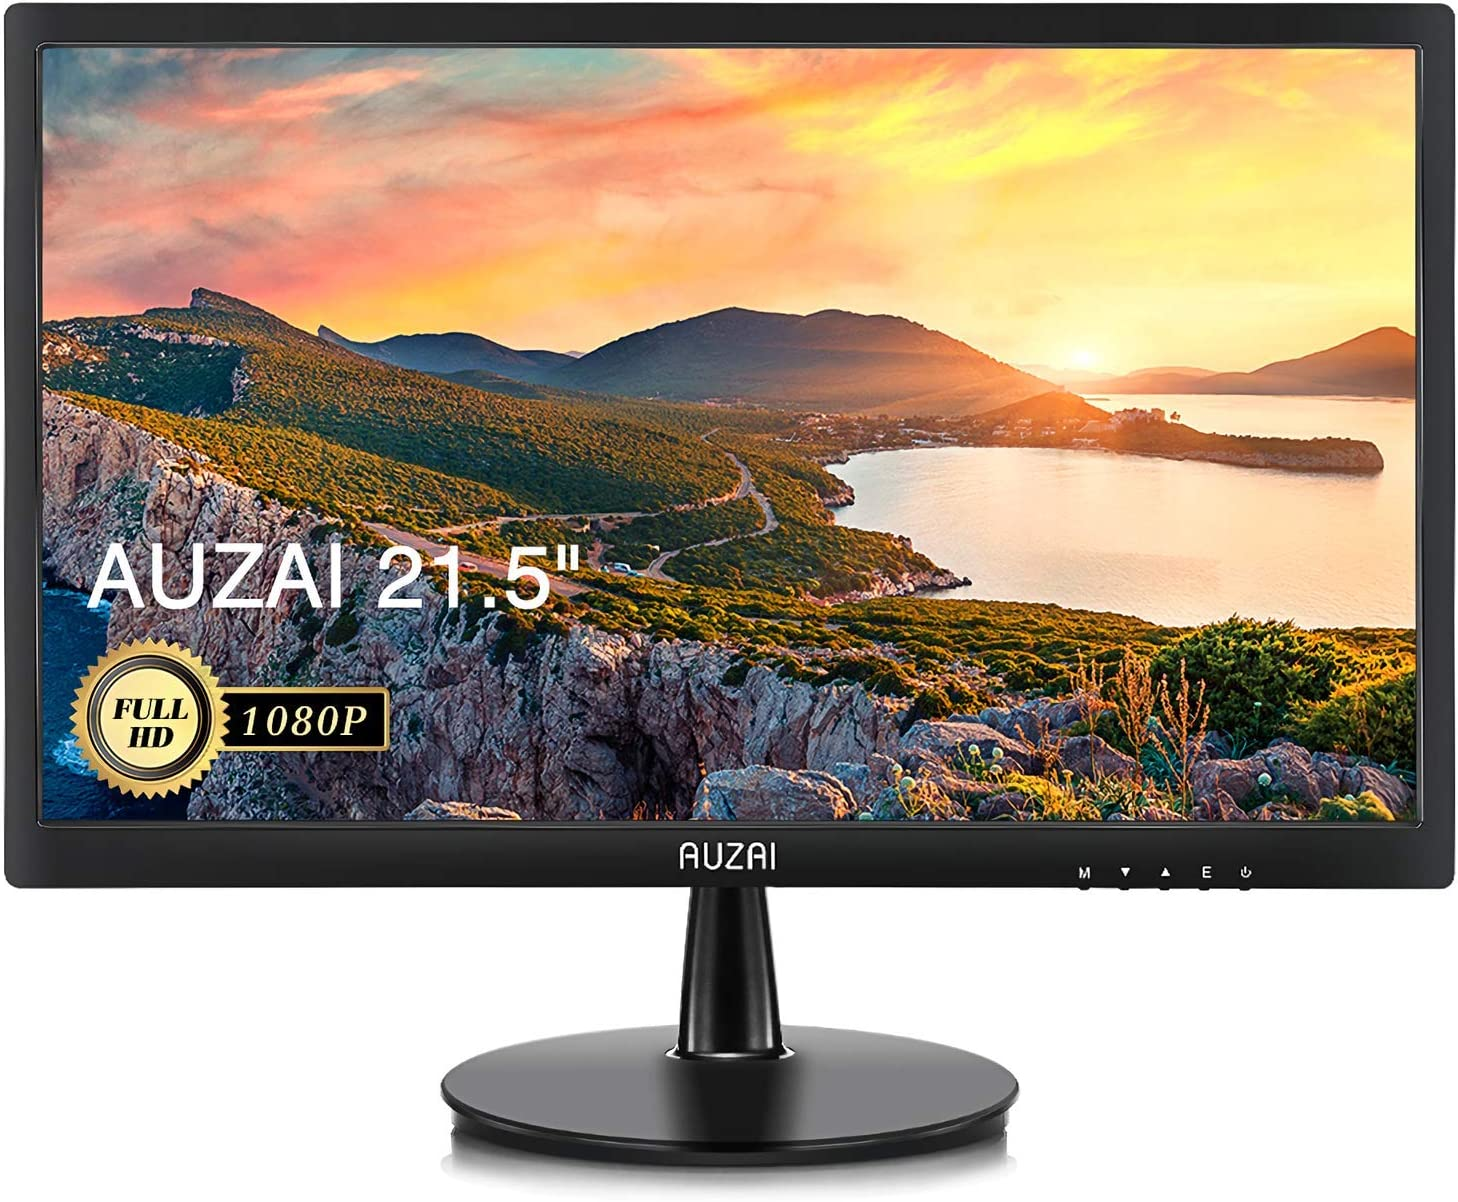 Computer Monitor- AUZAI 21.5 inch 1080p Full HD LED Computer Monitor for Business 75Hz 5ms with VESA Mounting Eye Care Anti Glare Panel Tilt VGA HDMI Port for Laptop PC Phone, Black